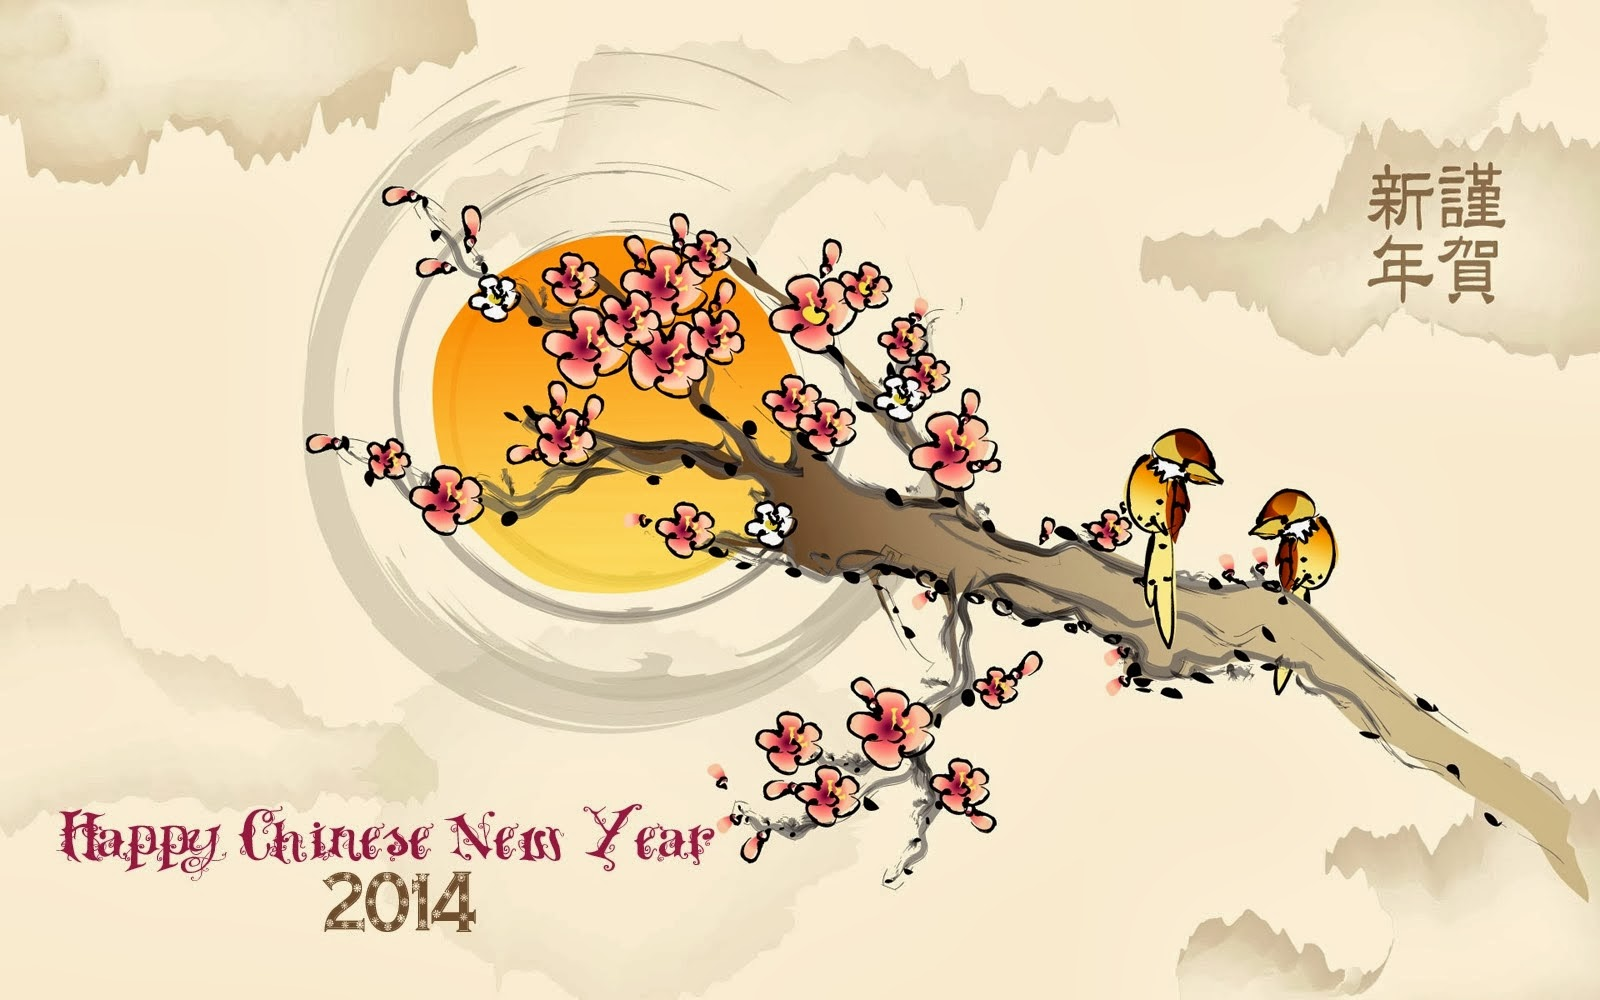 Happy Chinese New Year Facebook Status Messages with Chinese ...